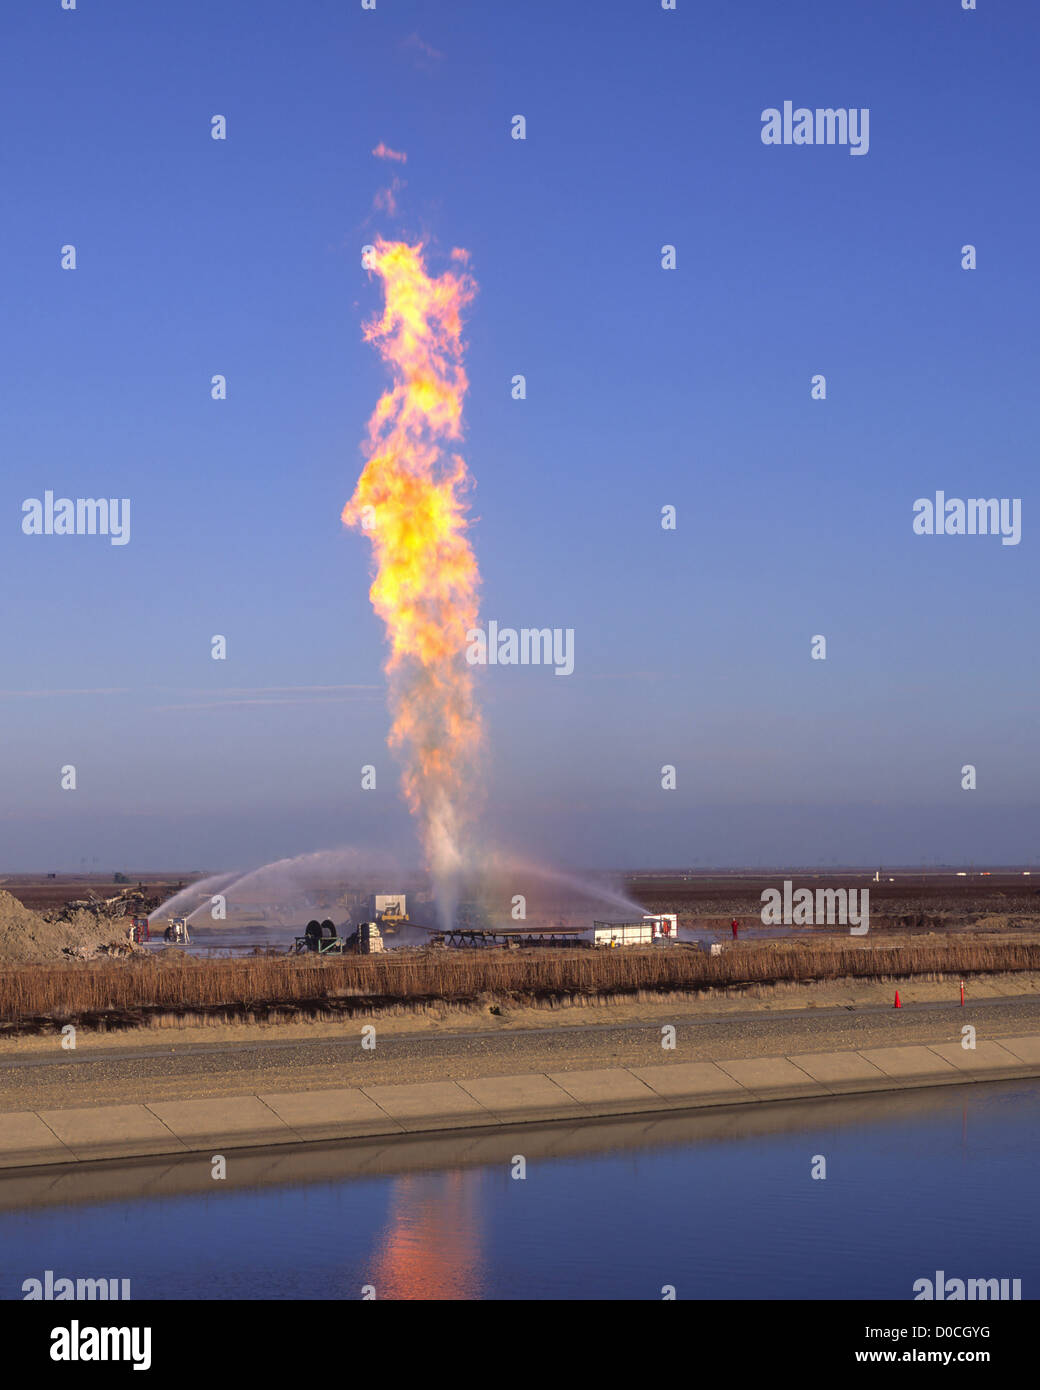 Water Cannons Reign In a Massive Natural Gas Well Fire - Stock Image